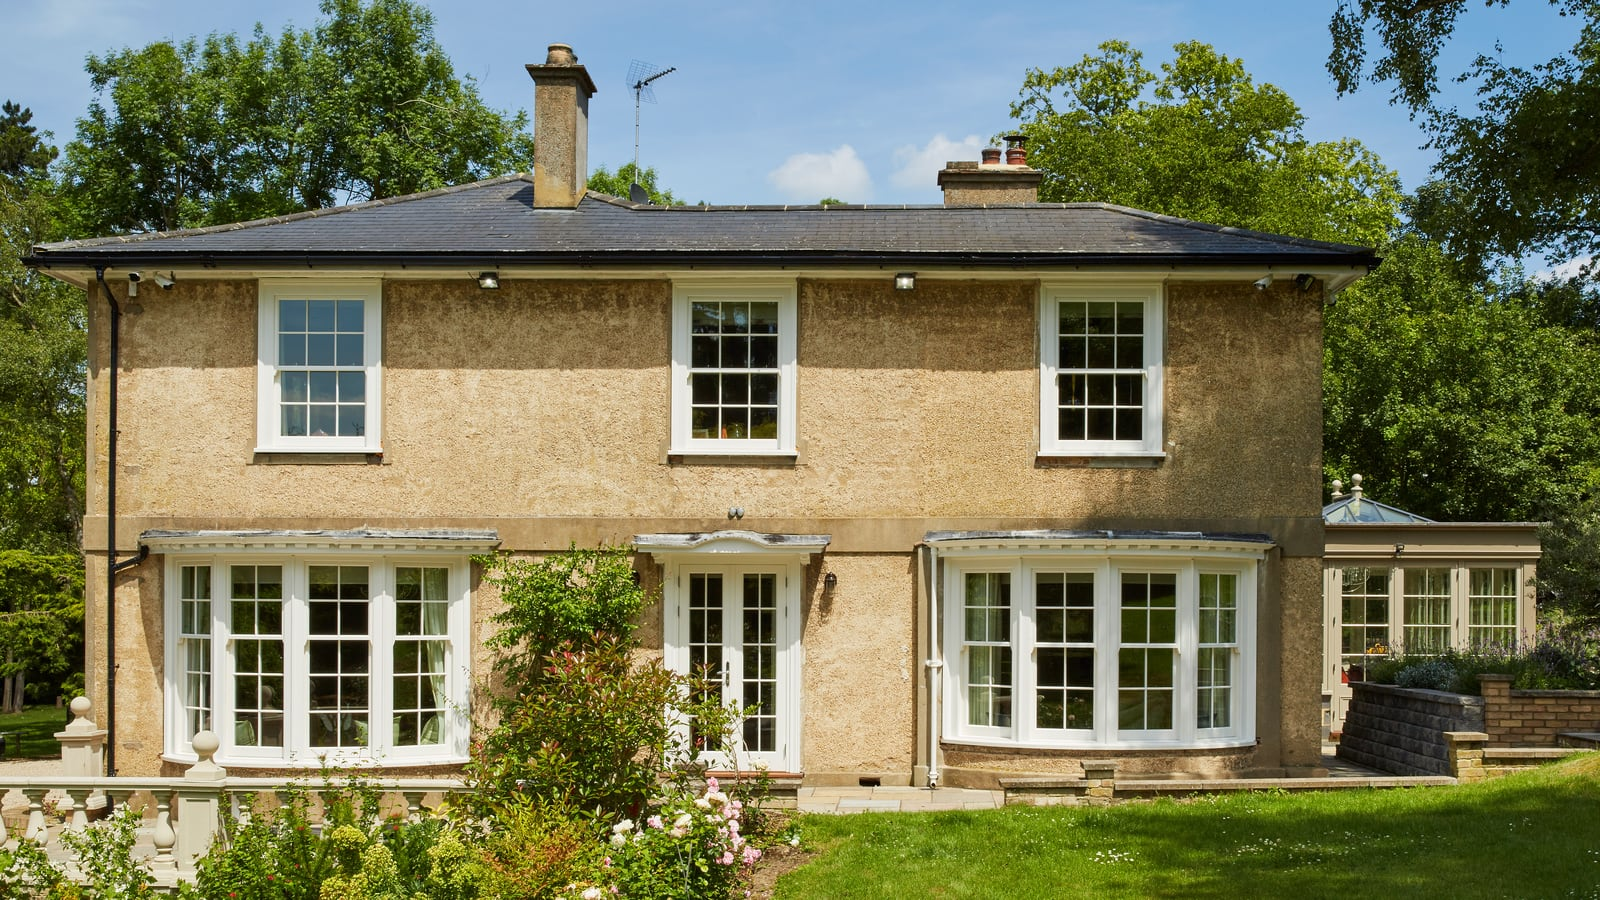 Legacy box sash windows with solar reflective glazing and bay windows